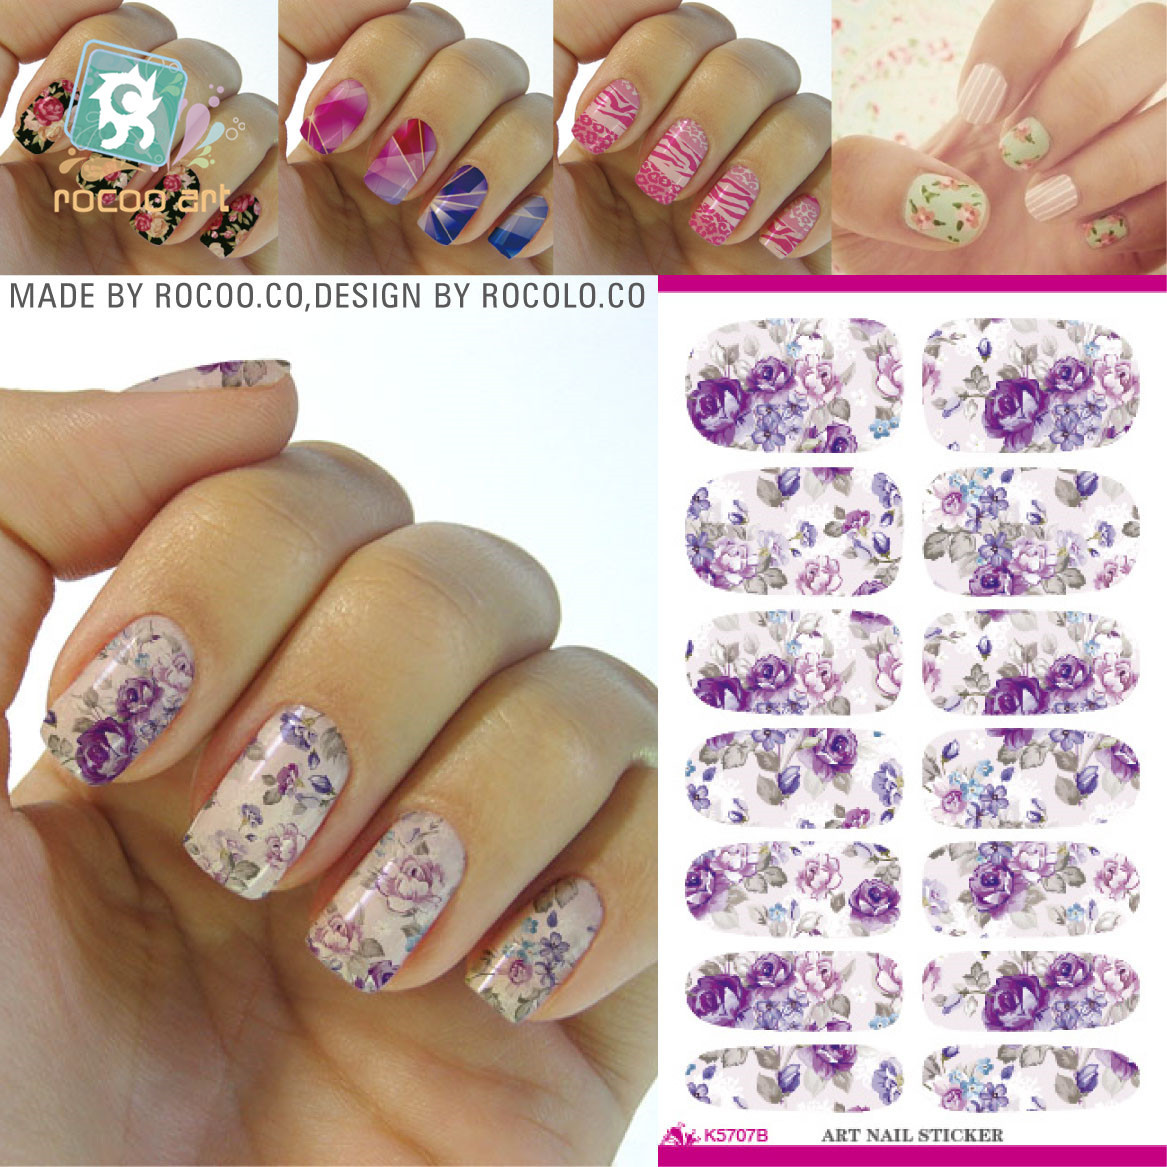 Water Transfer Stickers Full Tide Of Environmental Manicure Nail Make-up Accessories K5707b